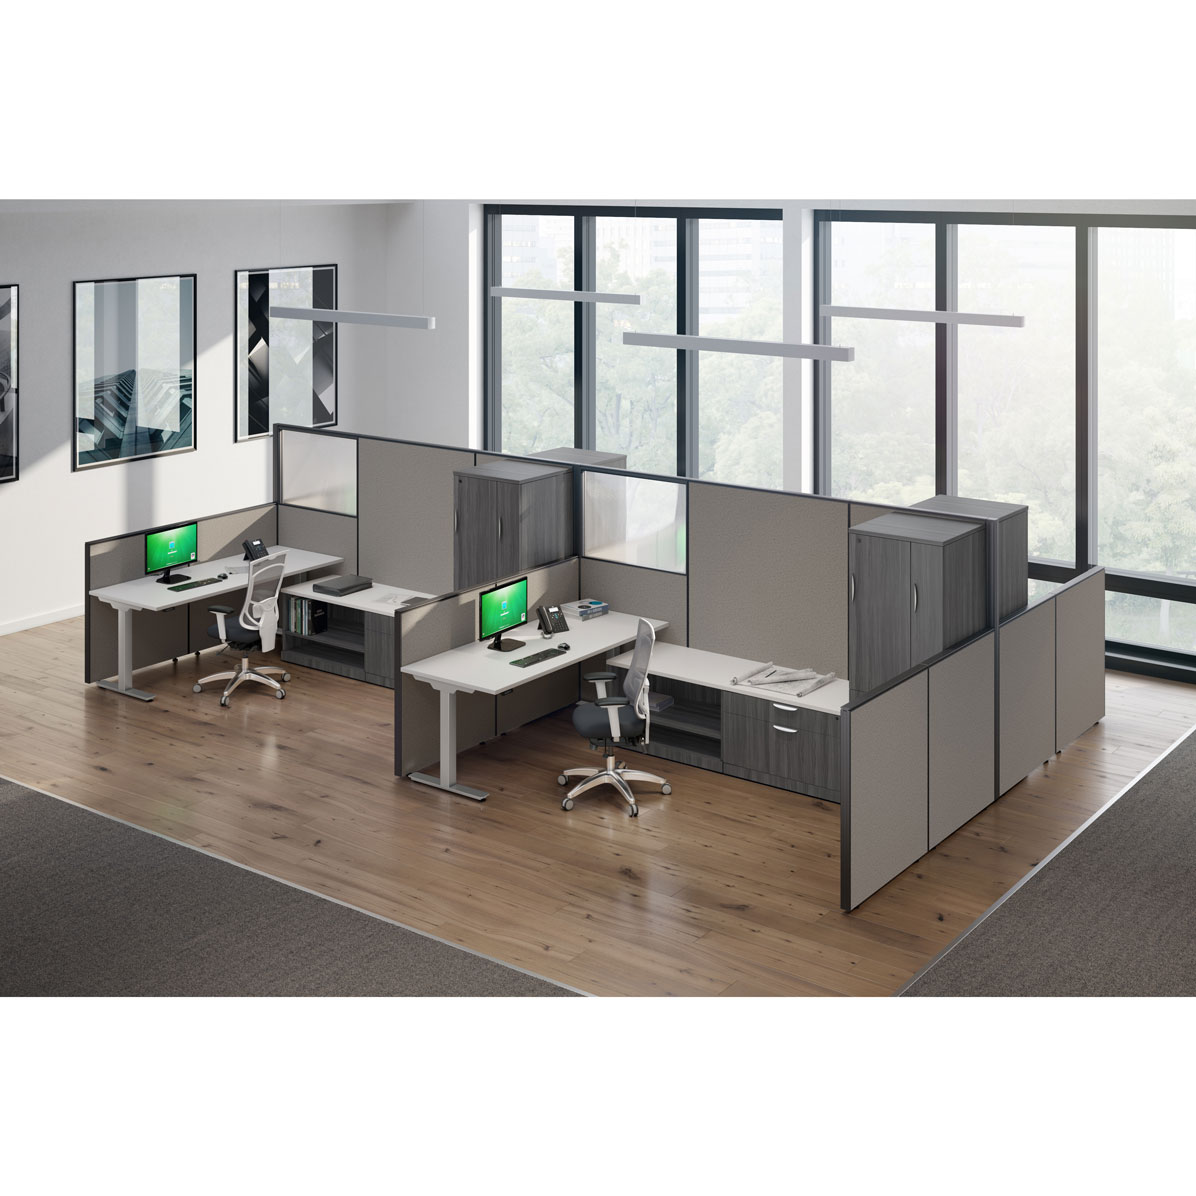 OfficeSource OS Panels Panel System 6 – Panels Only